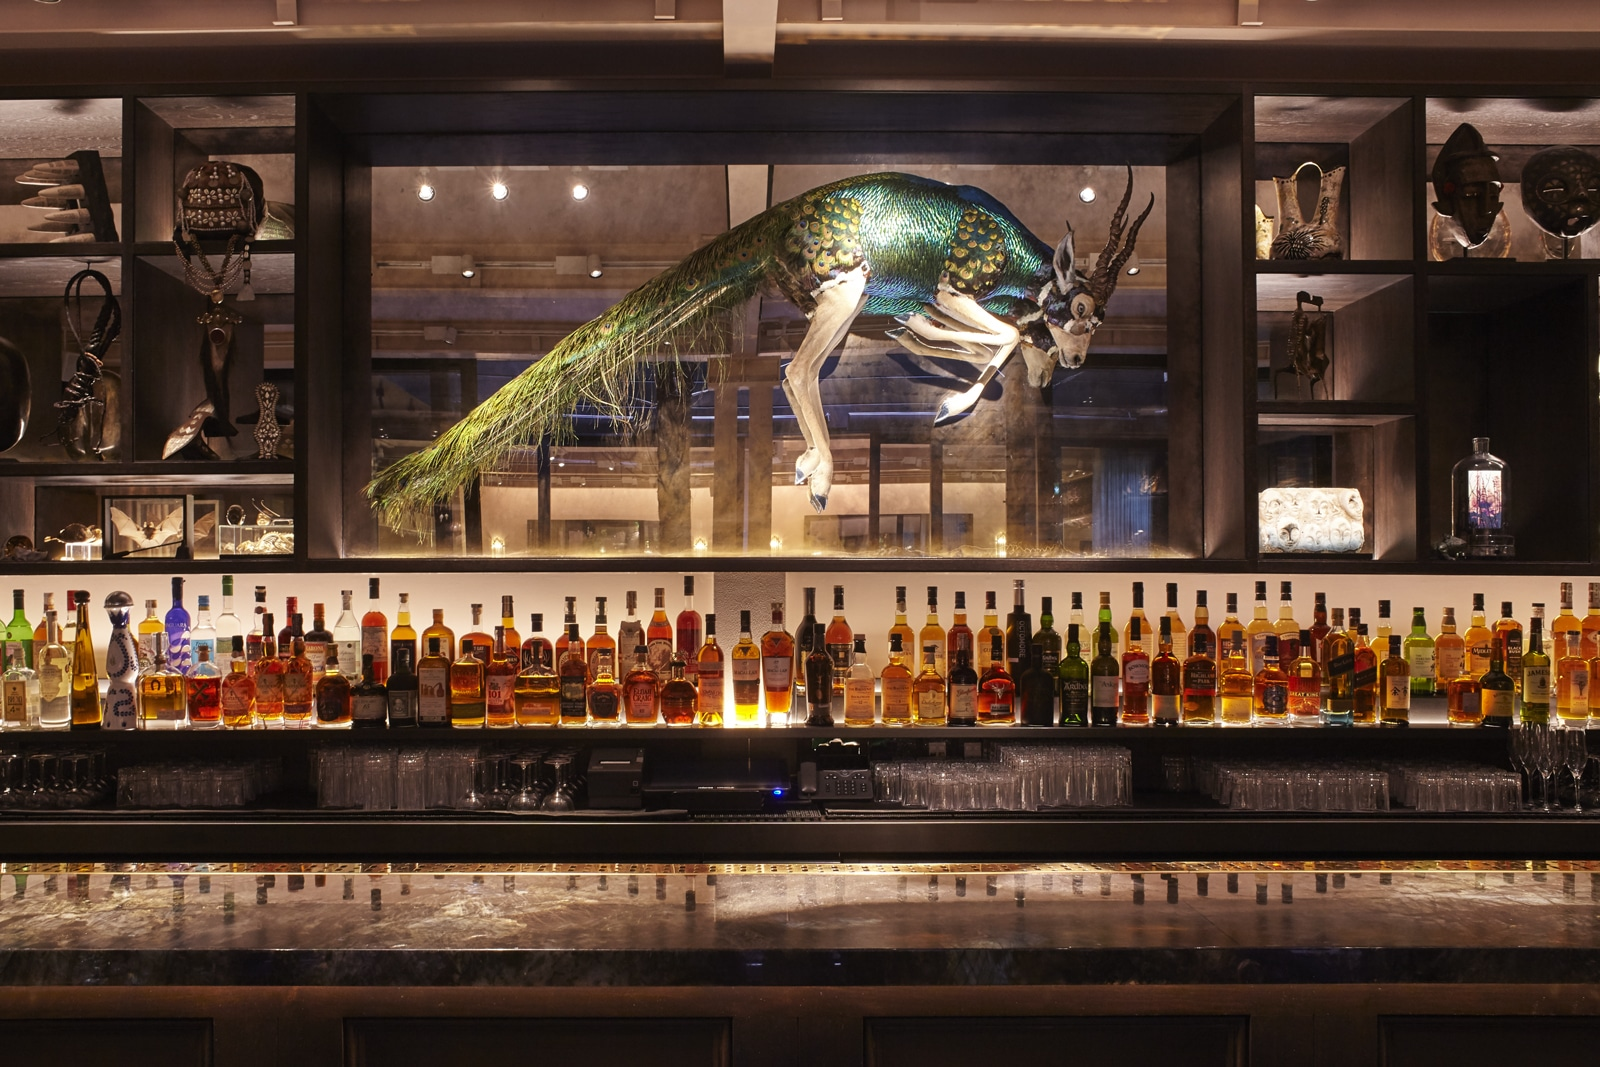 A gazellecock (hybrid peacock and gazelle) is mounted in a glass box above a row of spirits on the back of the bar at Waeska, London